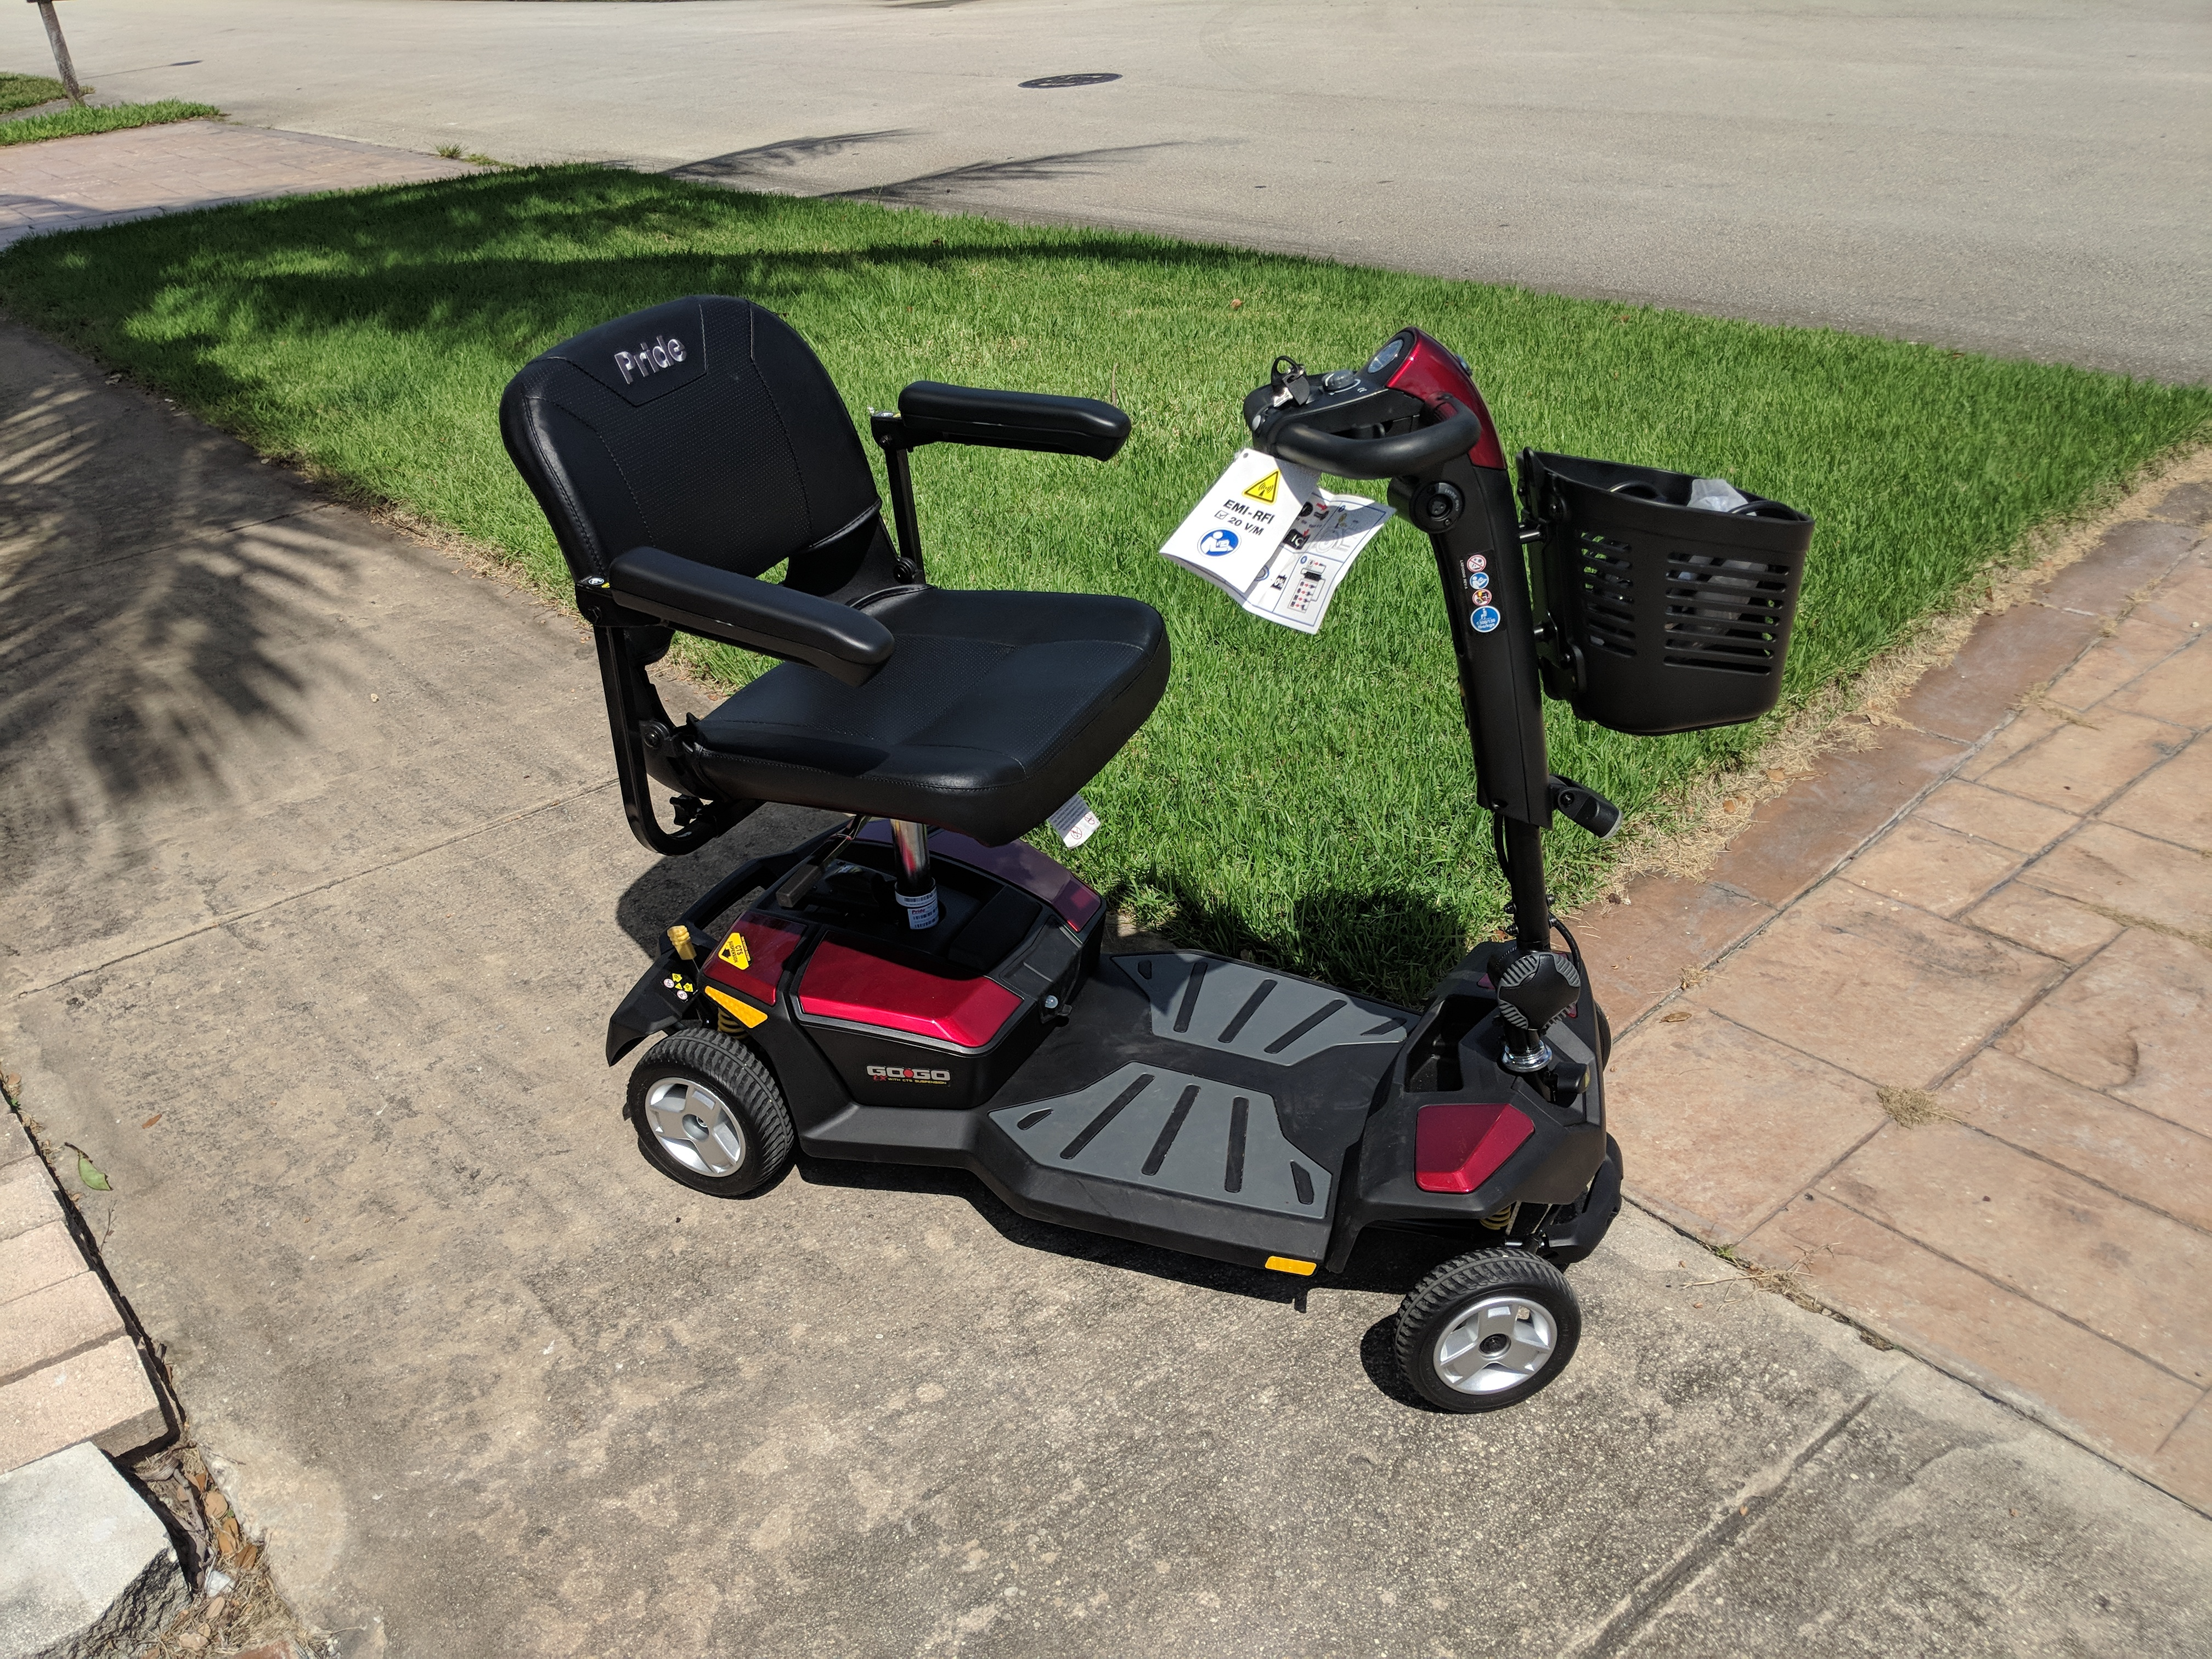 Used Mobility Scooters For Sale >> Go Go Lx 4 Wheel Scooter Buy Sell Used Electric Wheelchairs